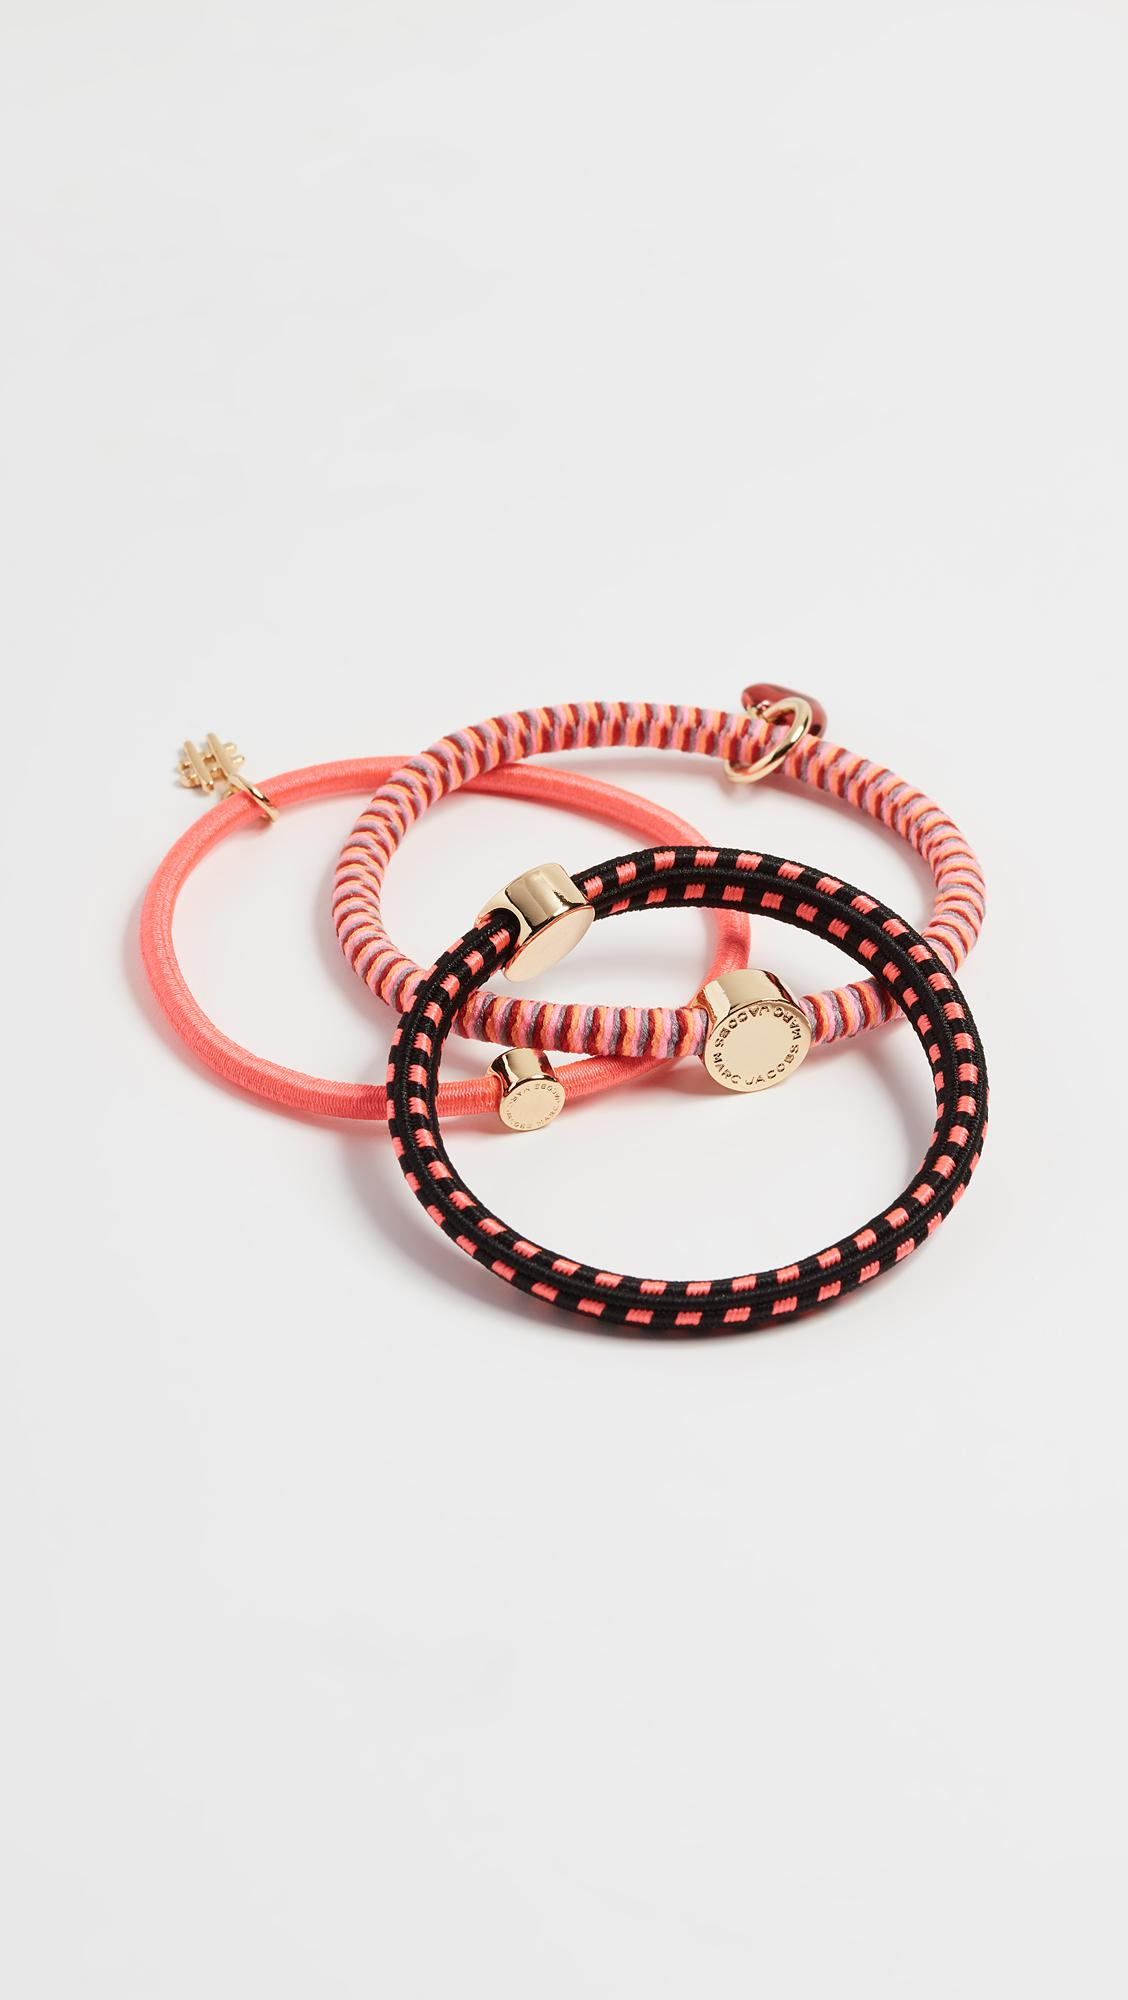 Marc Jacobs Sporty Pony Hair Tie Set 6eMd5c